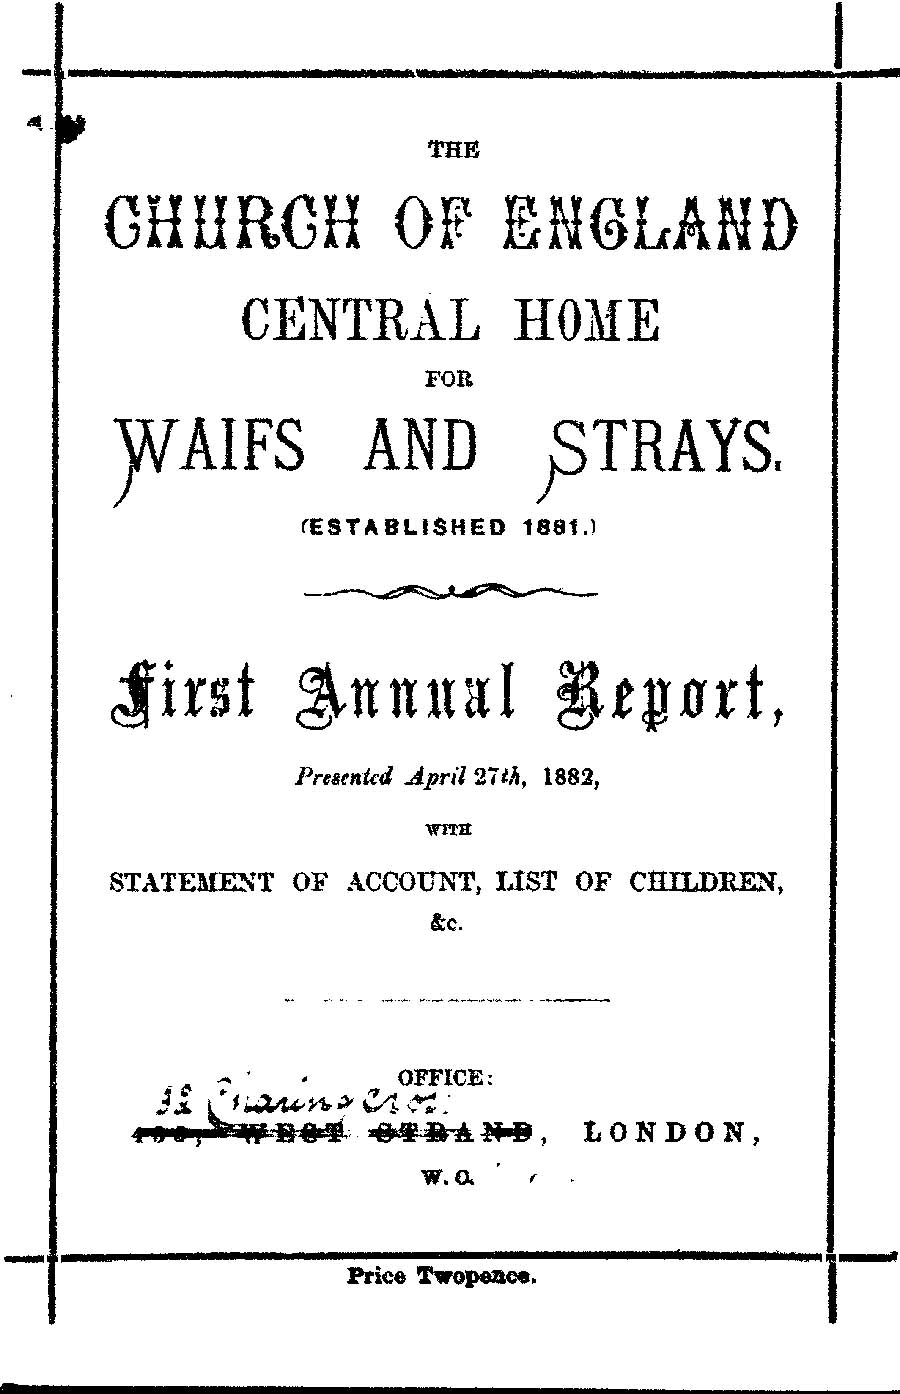 Annual Report 1882 - page 1